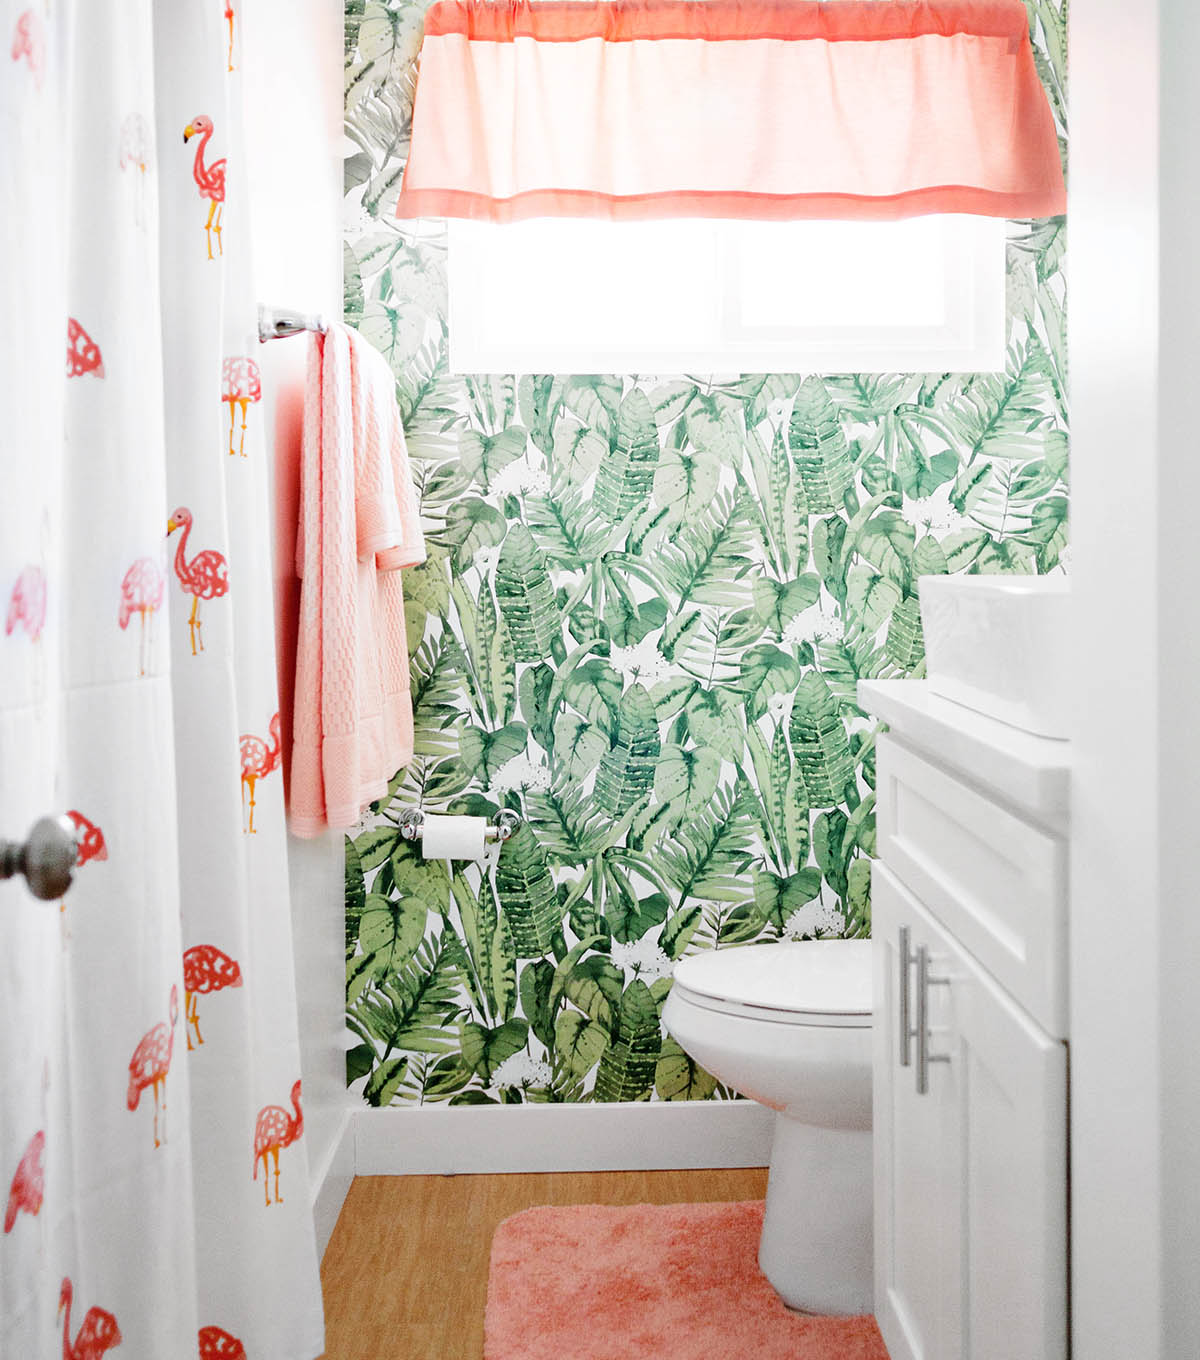 How To Make A Dyed Kitchen Café Curtains | JOANN